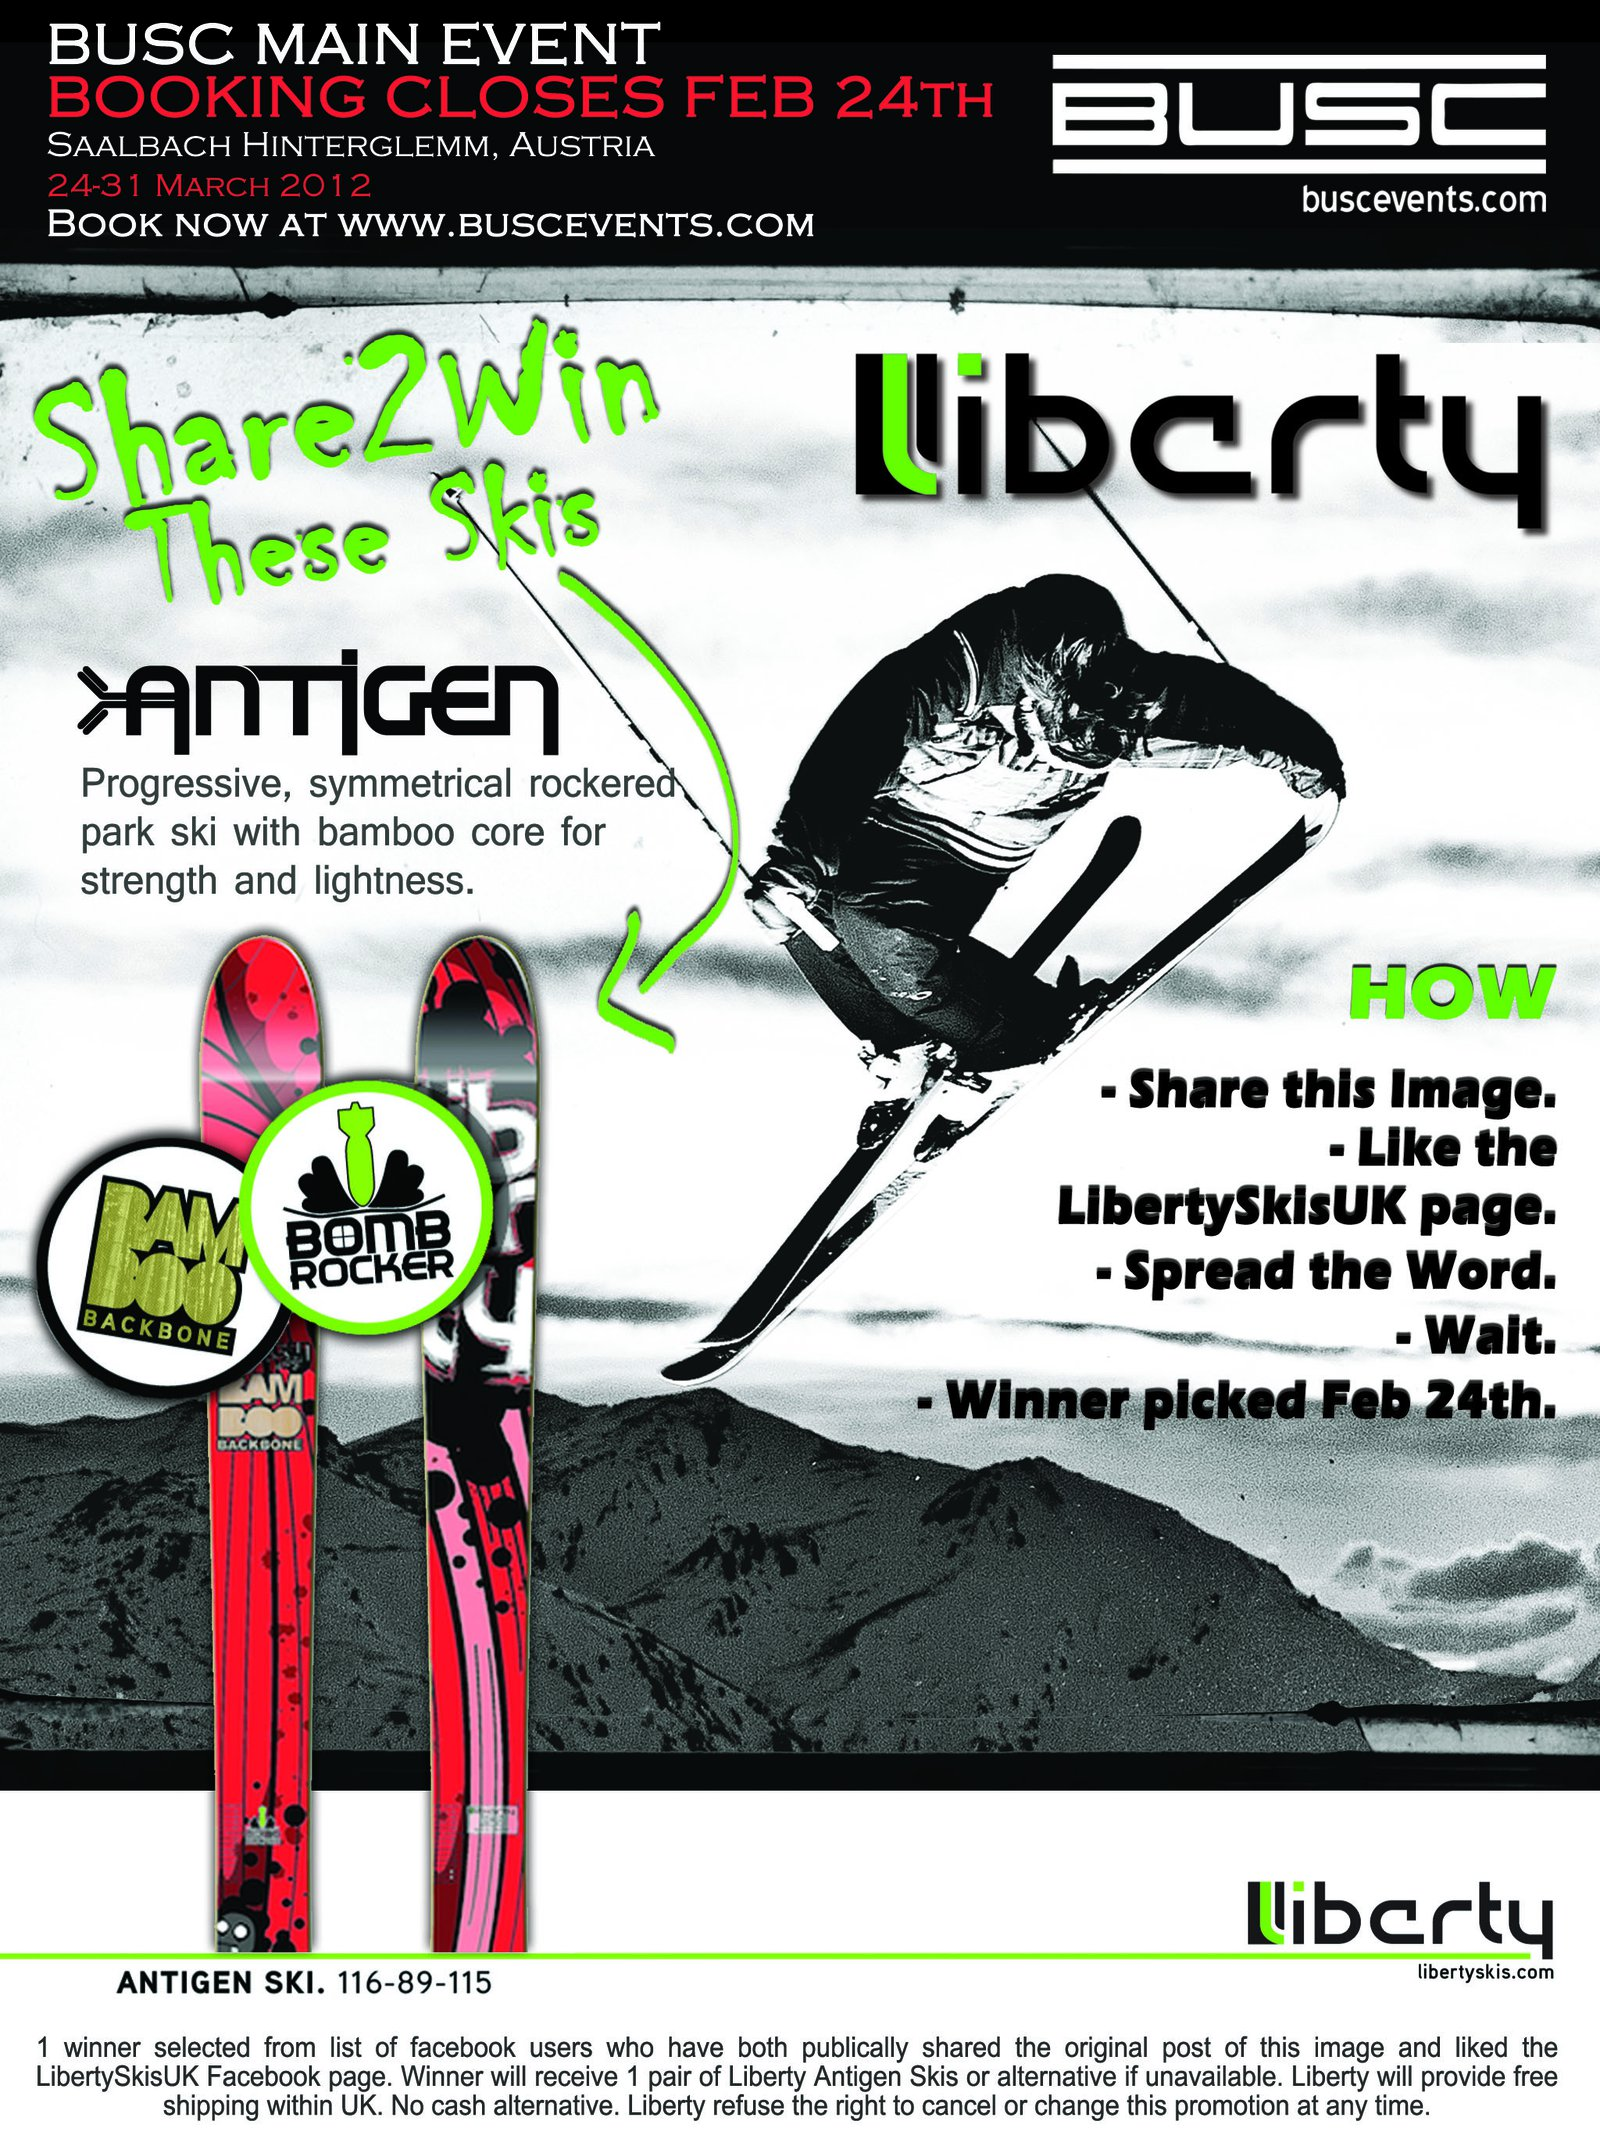 BUSC Liberty Share to win